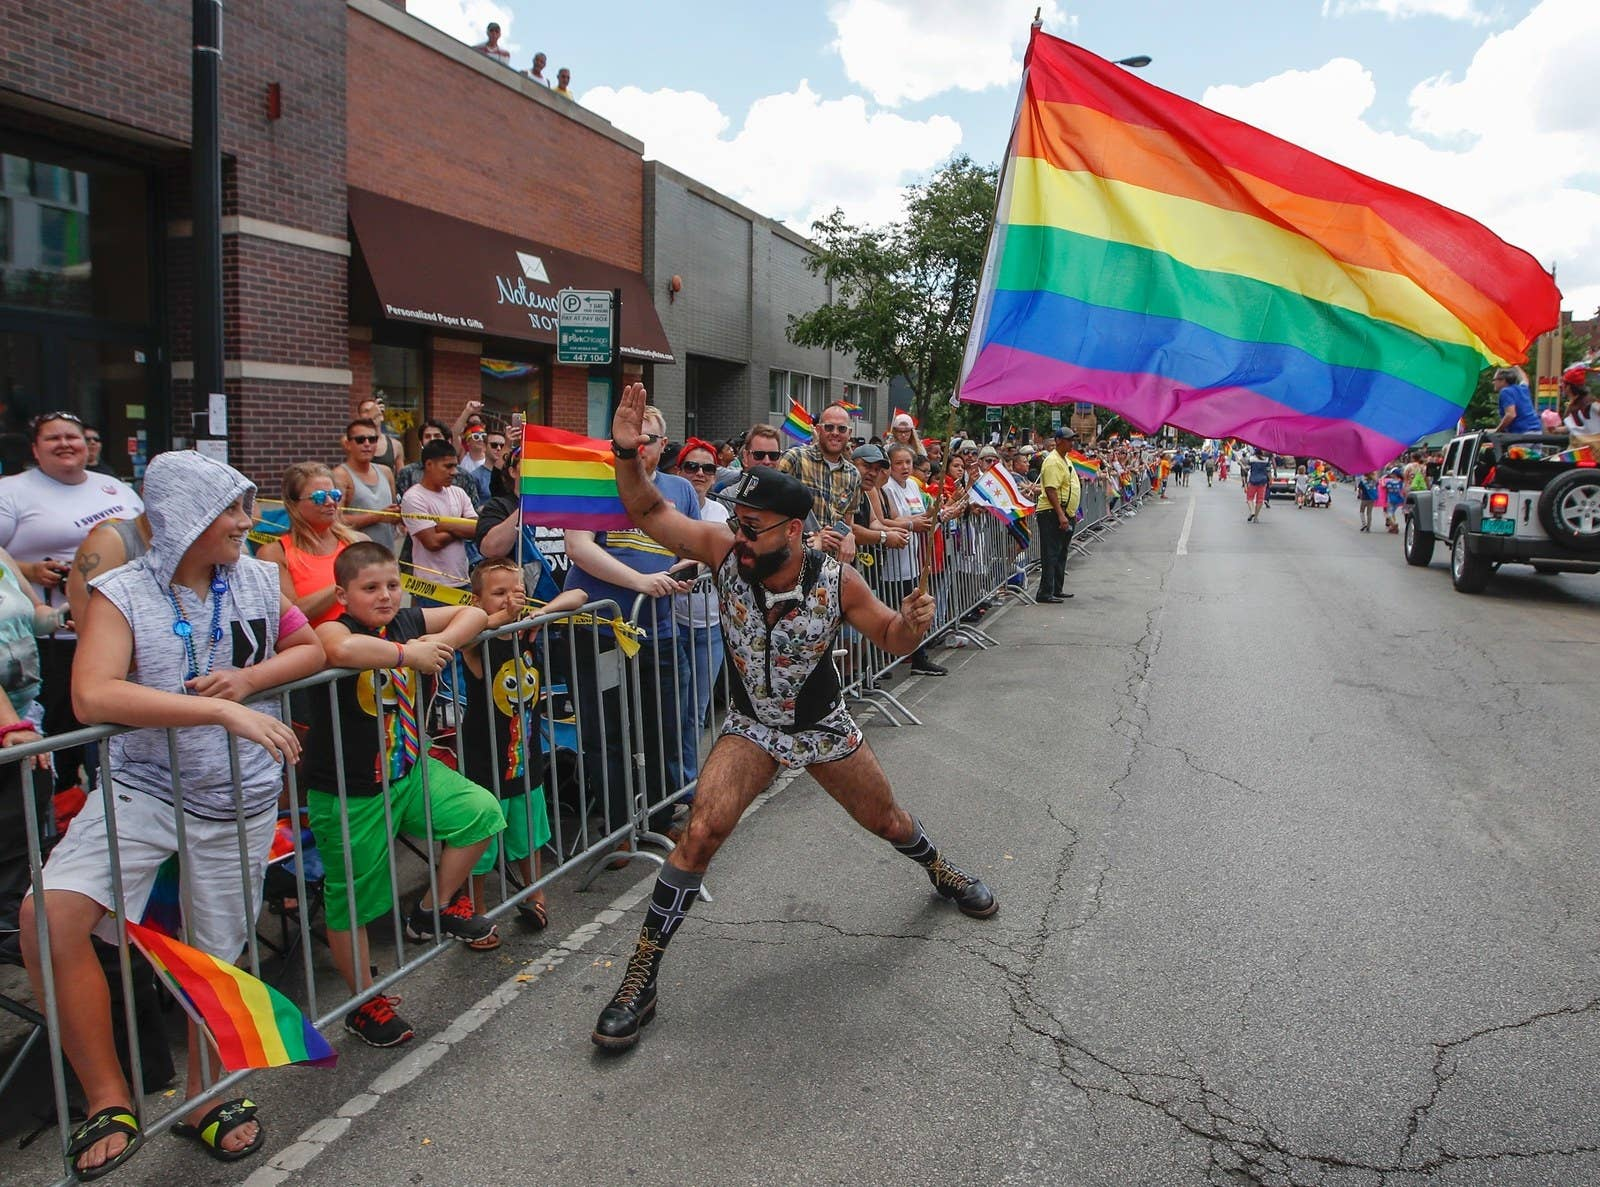 People celebrate the 48th annual Gay and Lesbian Pride Parade on June 25,  2017 in